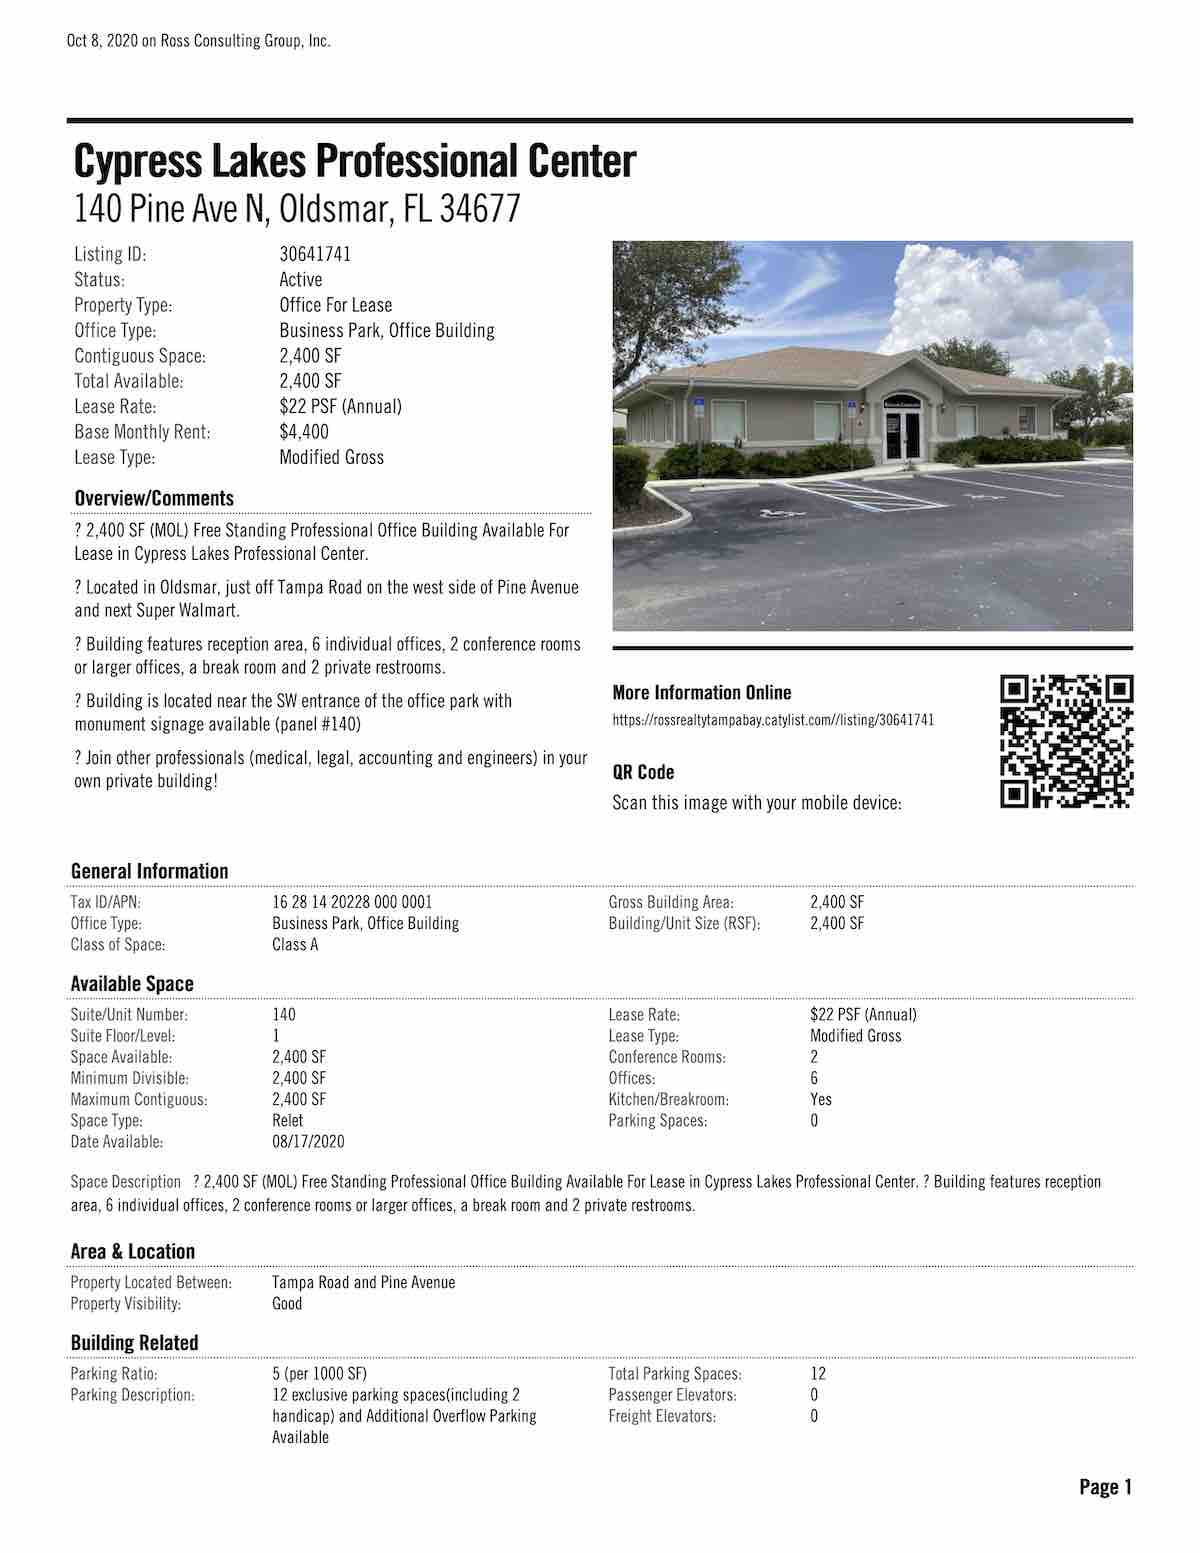 FOR LEASE - Cypress Lakes Professional Center - 140 Pine Ave N, Oldsmar, FL 34677 P1